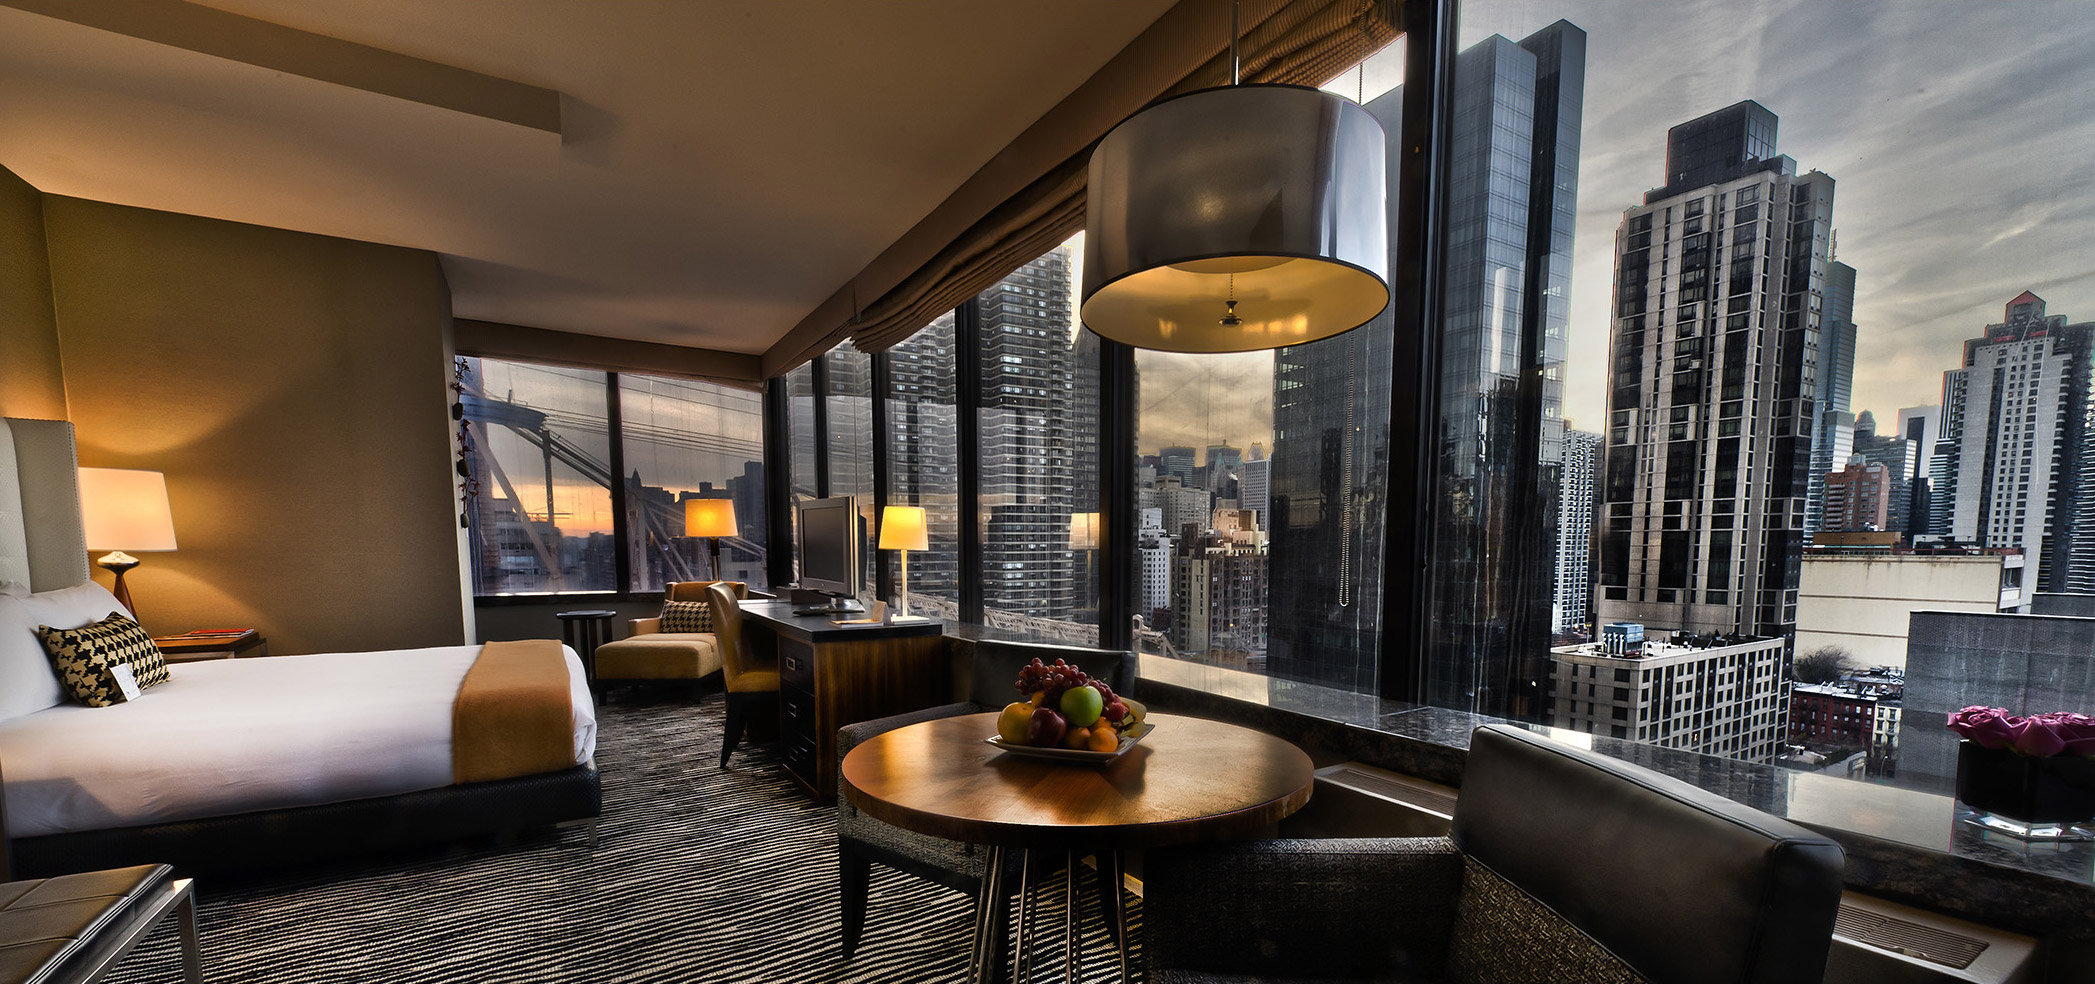 Travel Smart - 5 Hotels For 5 Different Budgets In NYC — Rochester Plaza